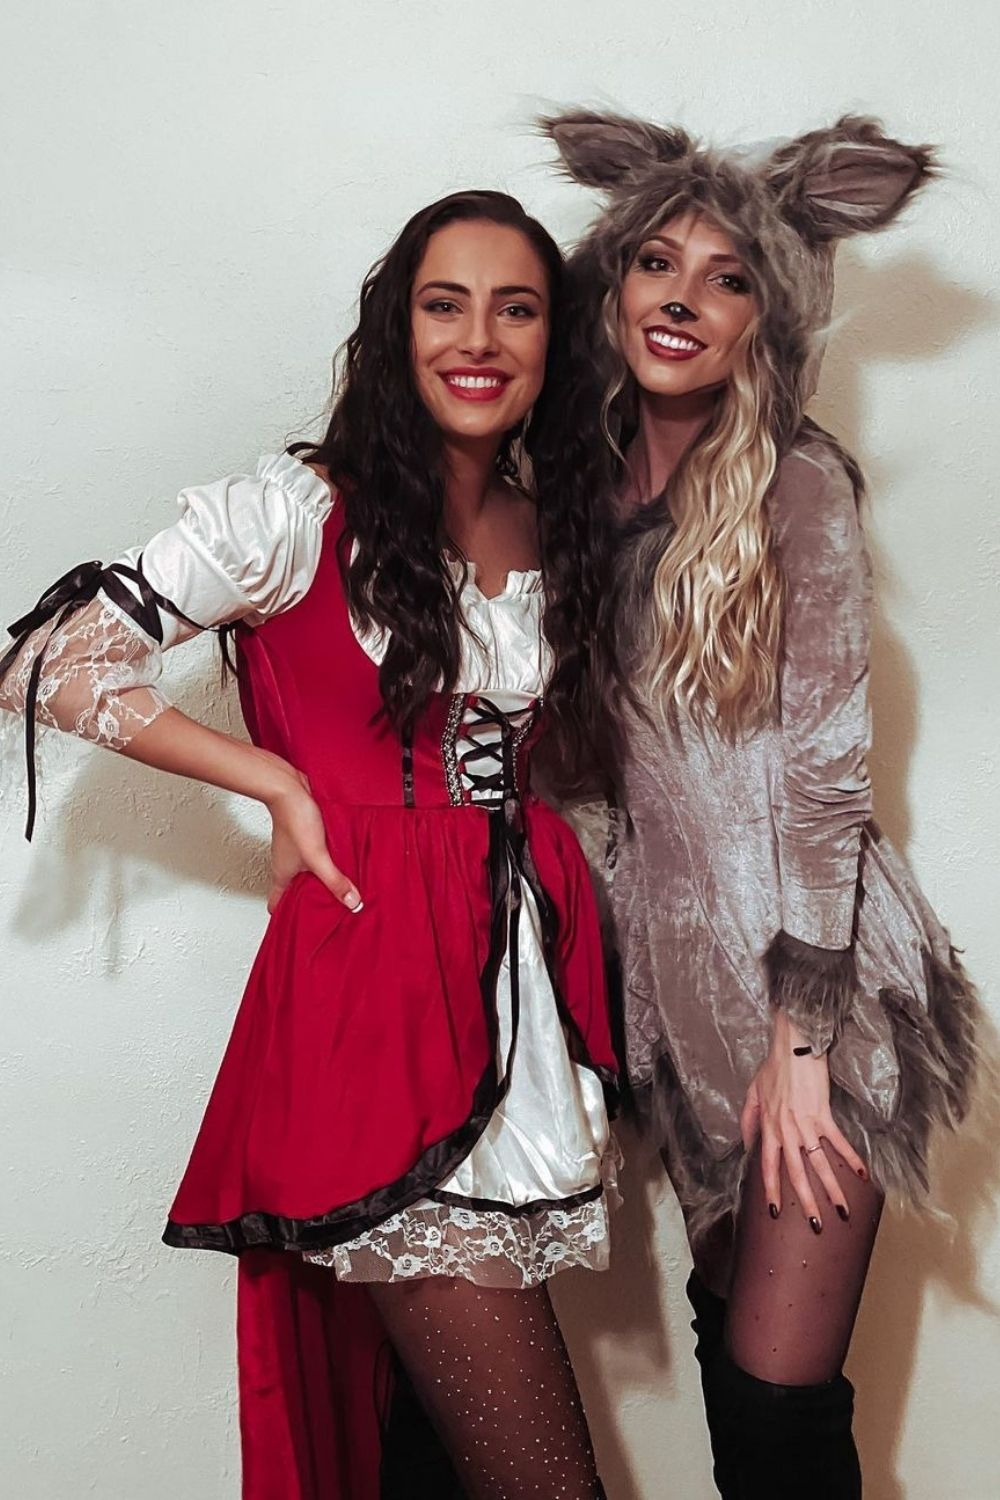 34 Chic Halloween Costumes for Best Friends 2021